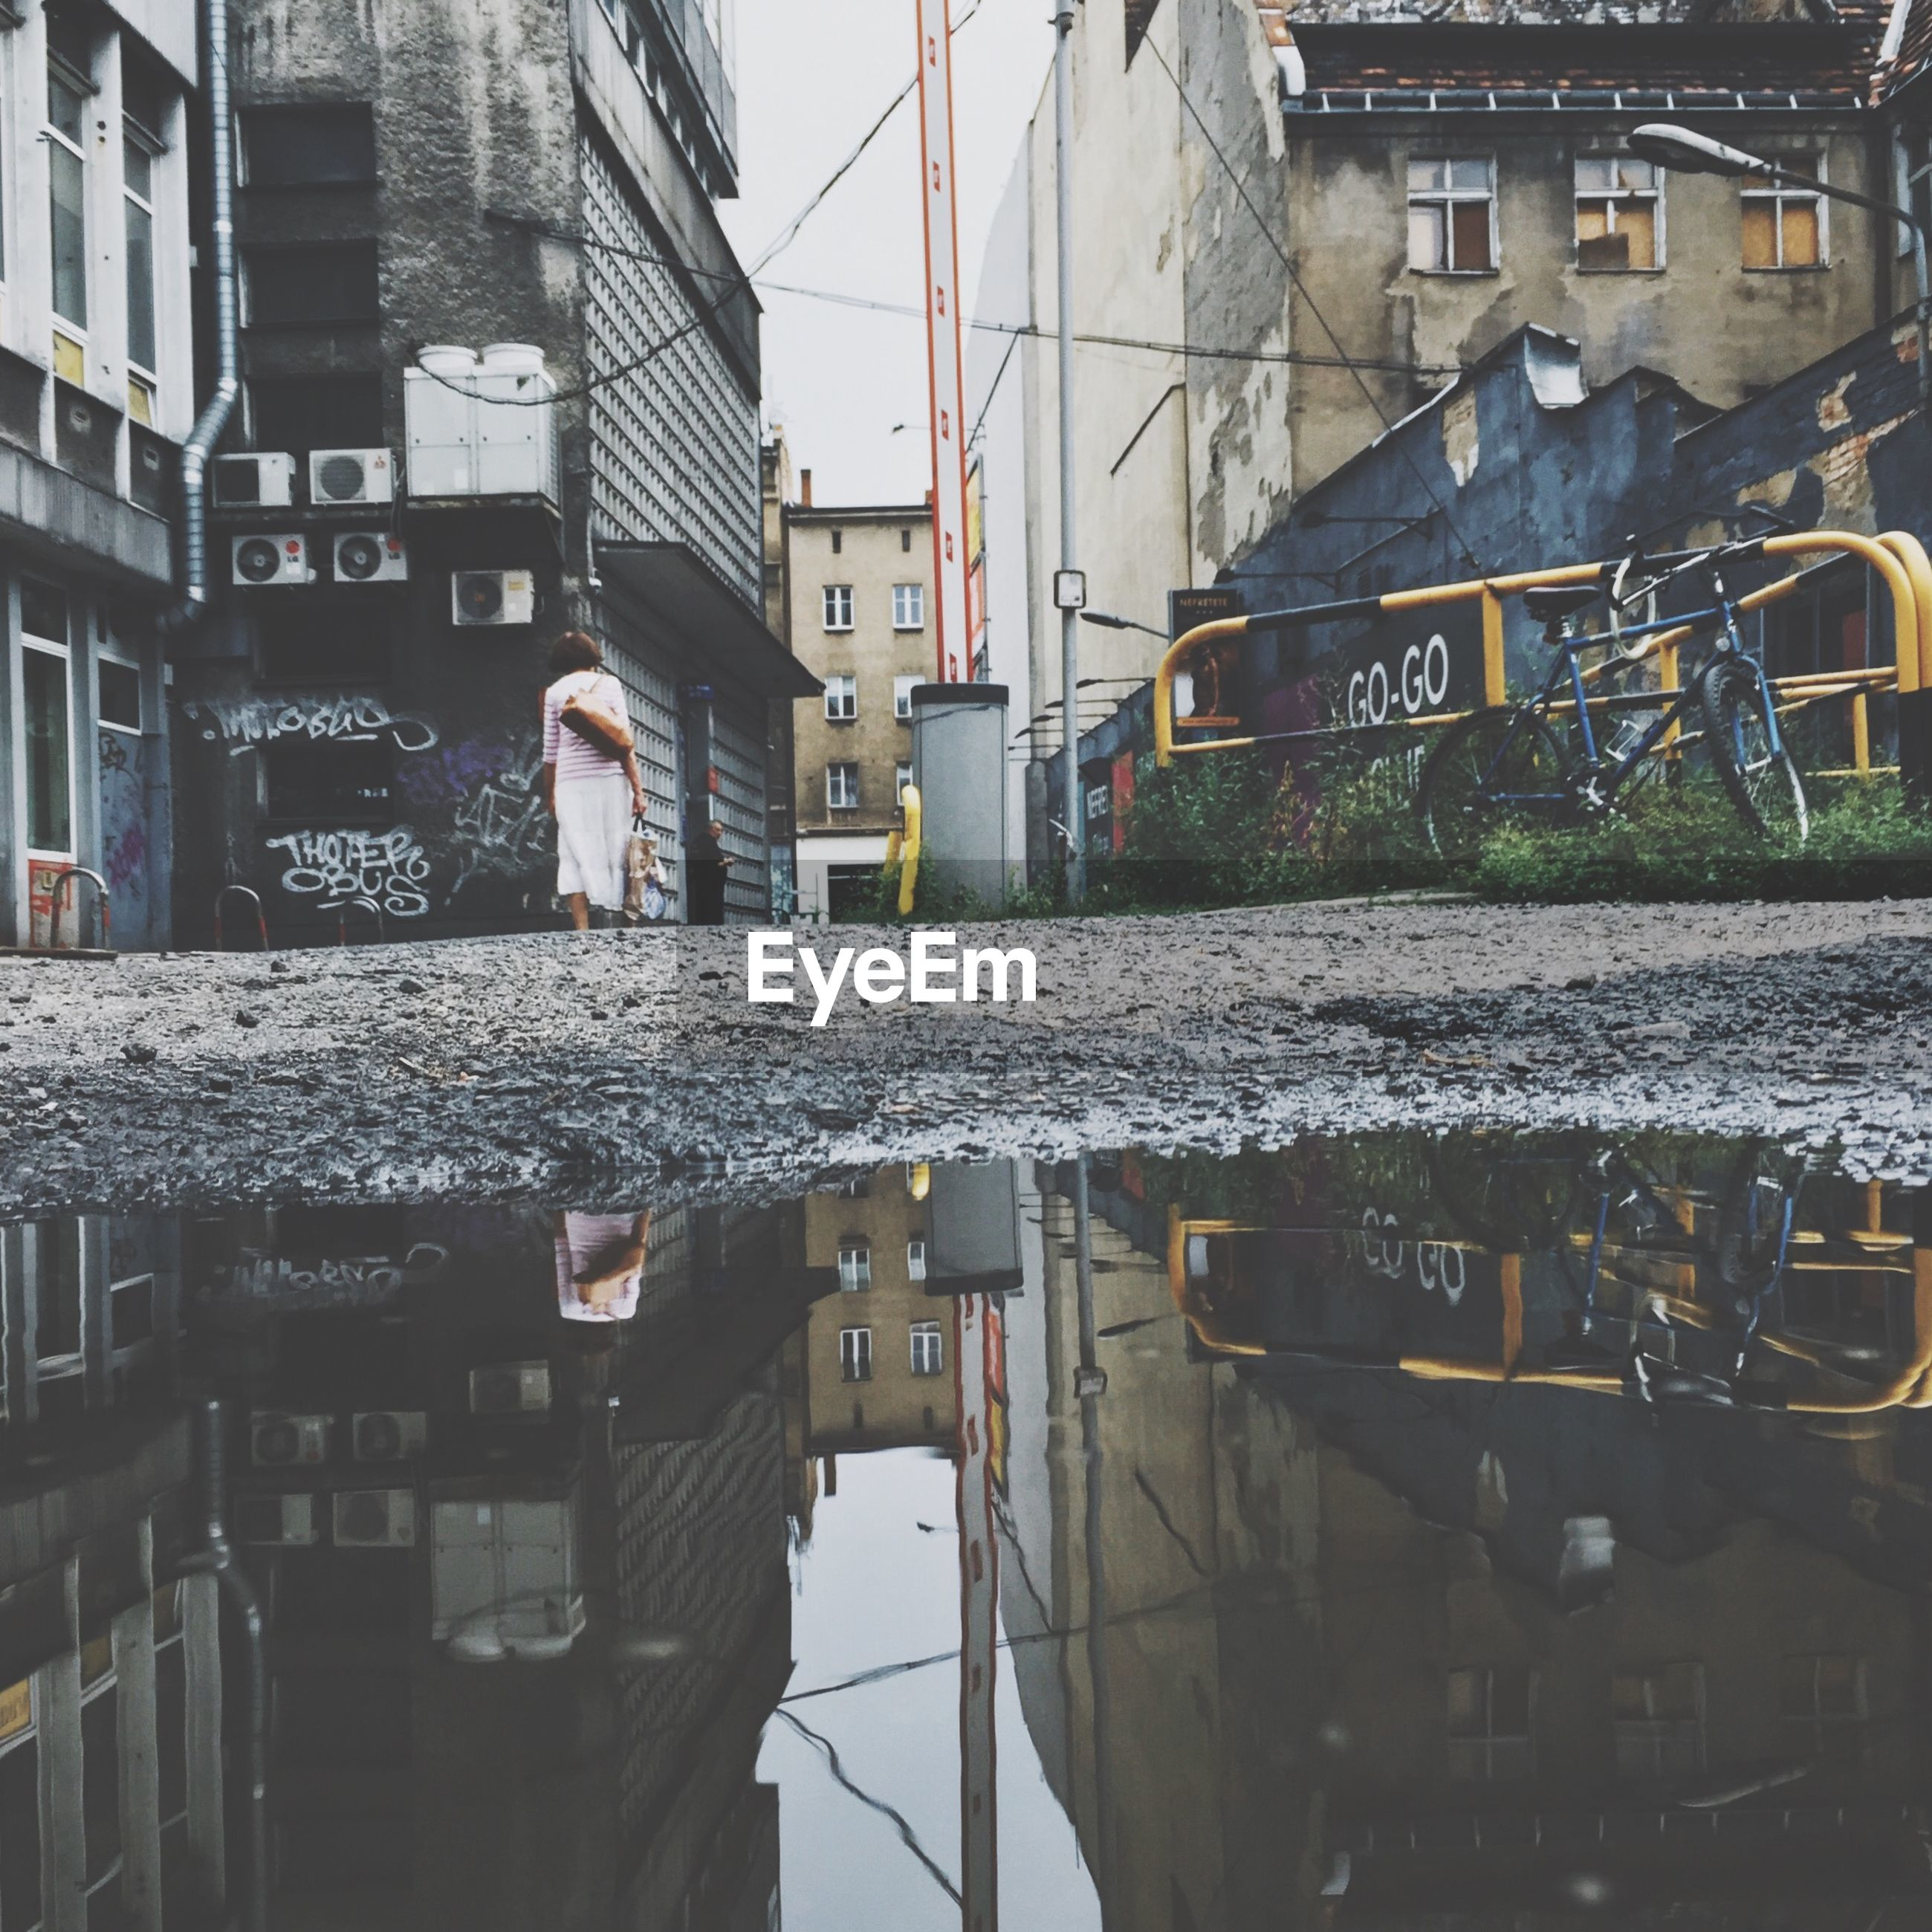 Puddle on street with woman seen in background